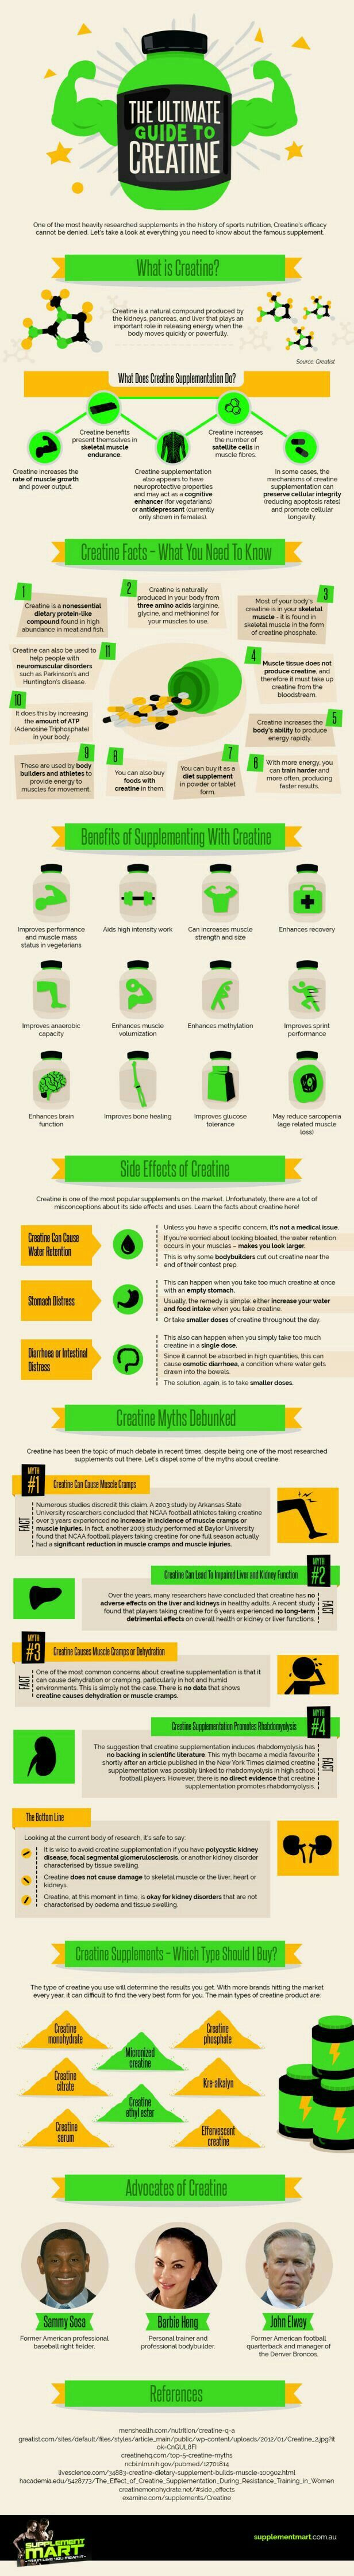 The ultimate guide to creatine | infographic | fitness supplements